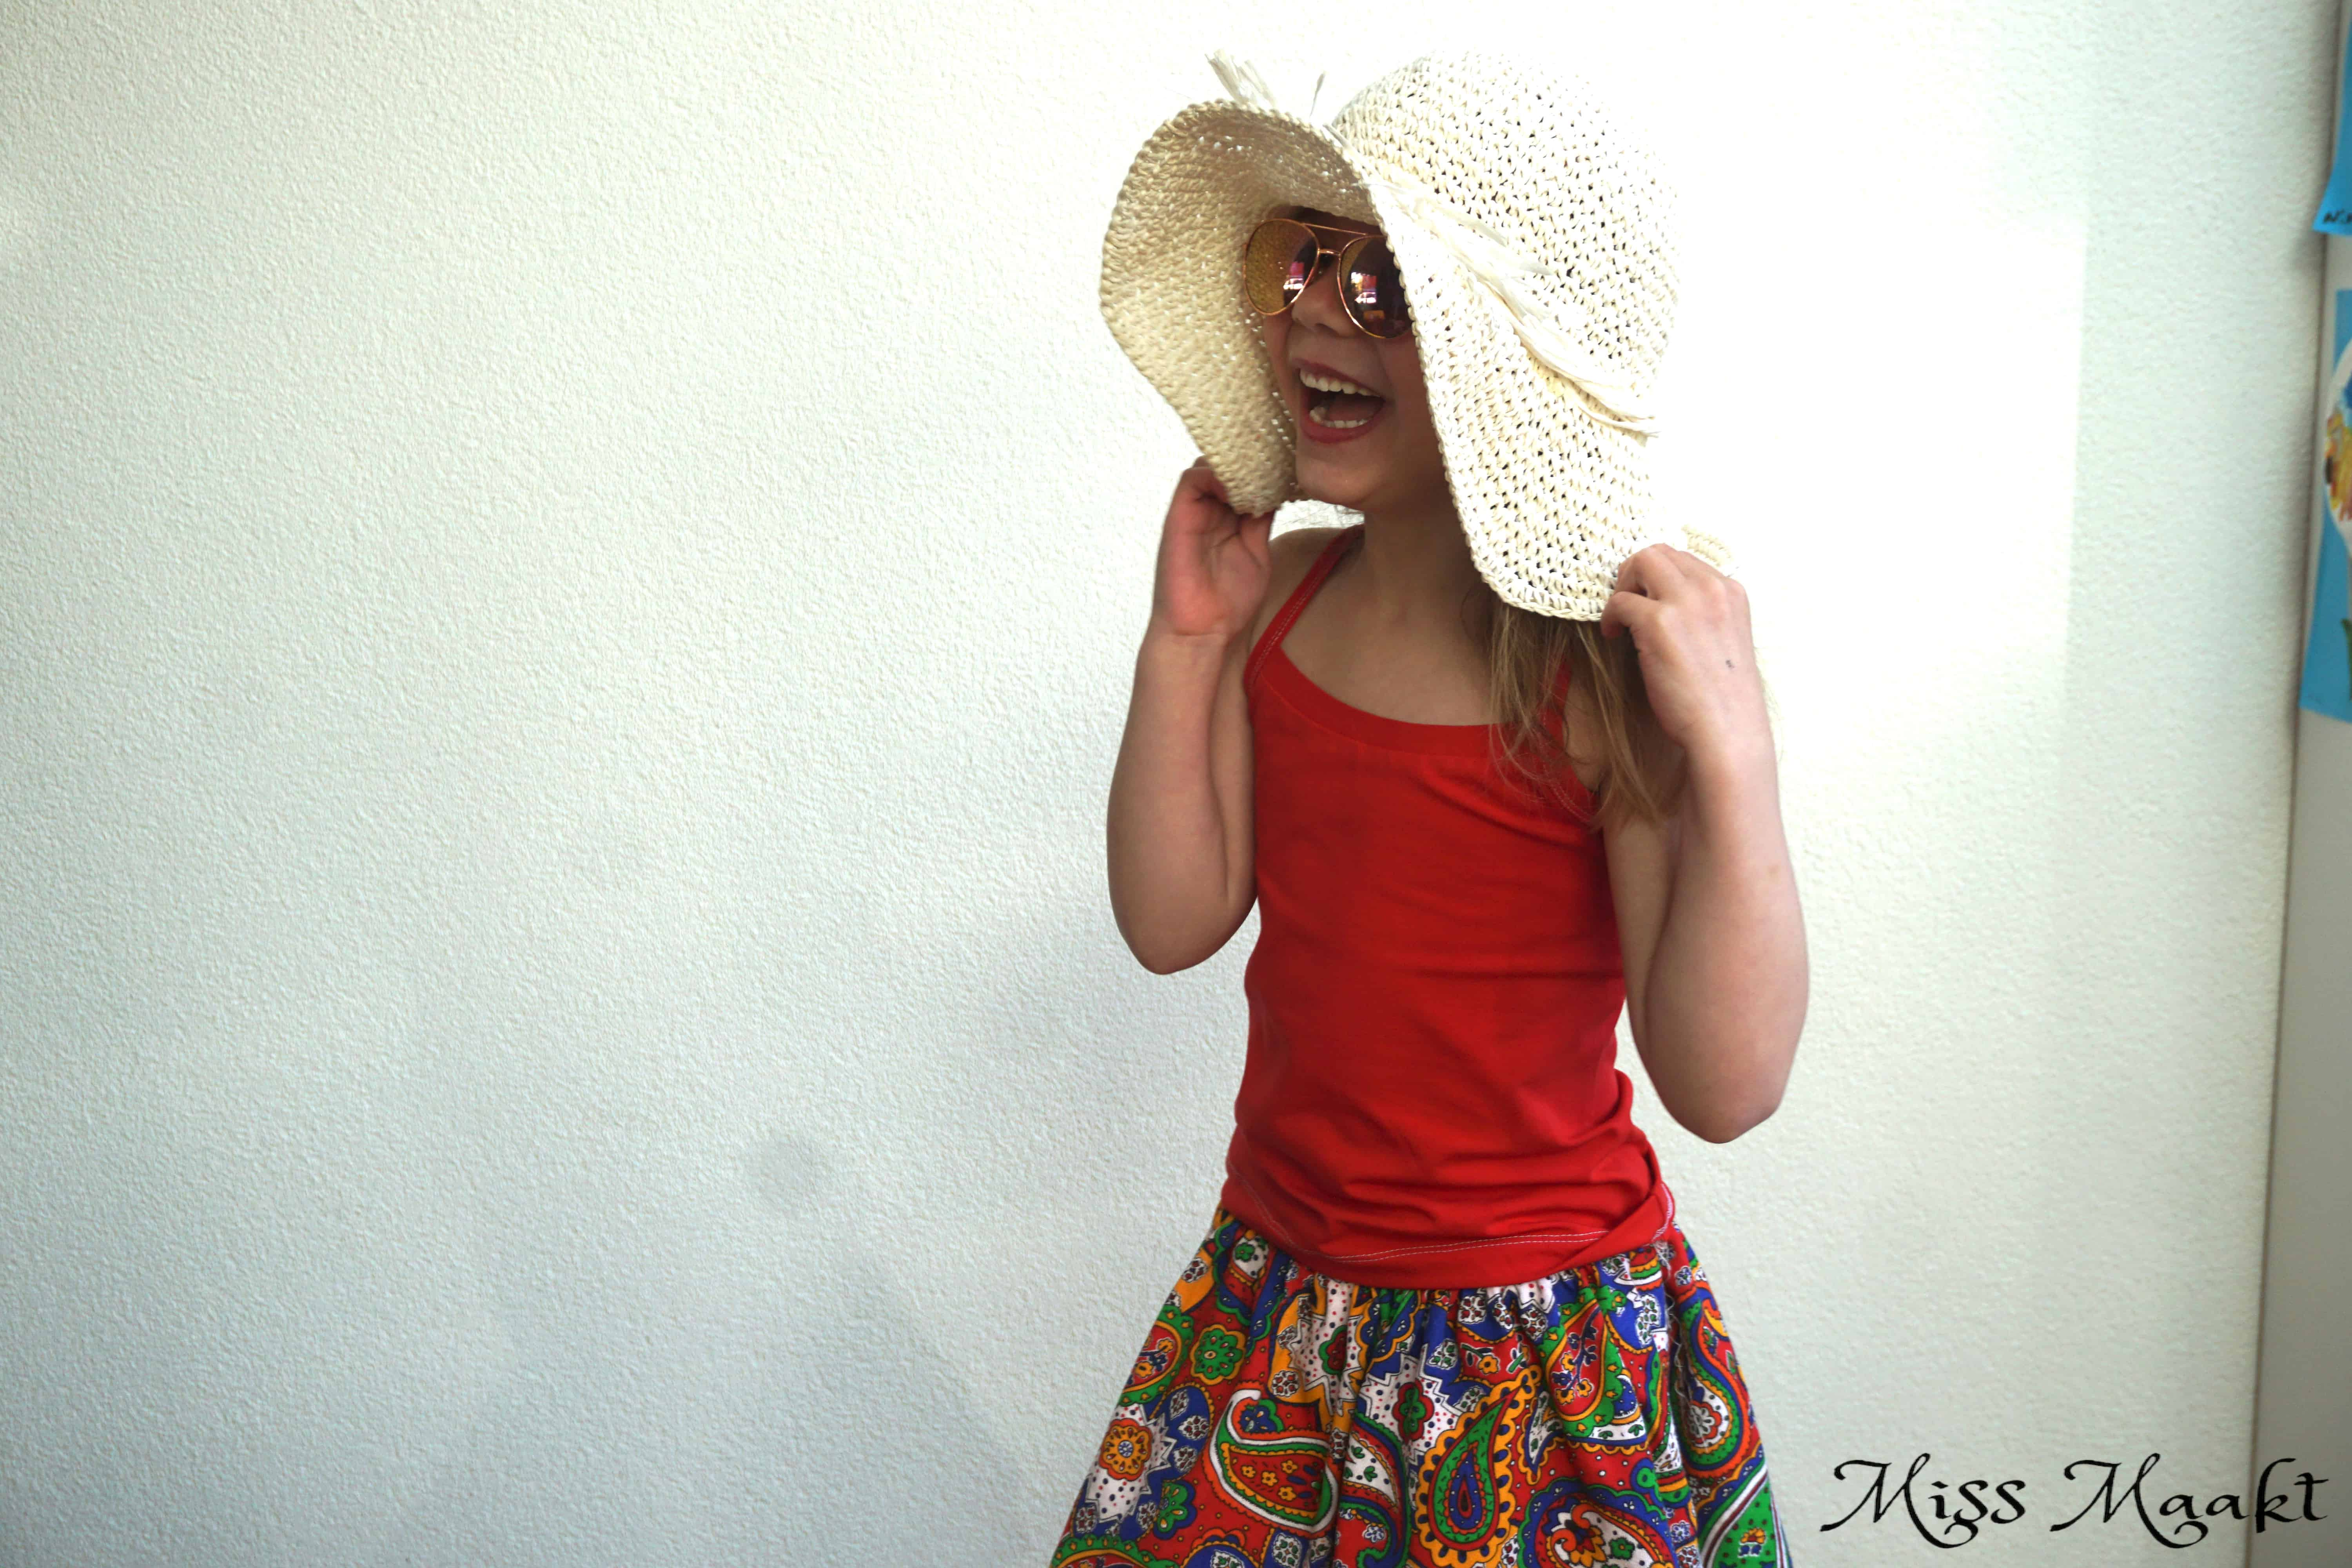 Een zomers outfit voor Ninthe